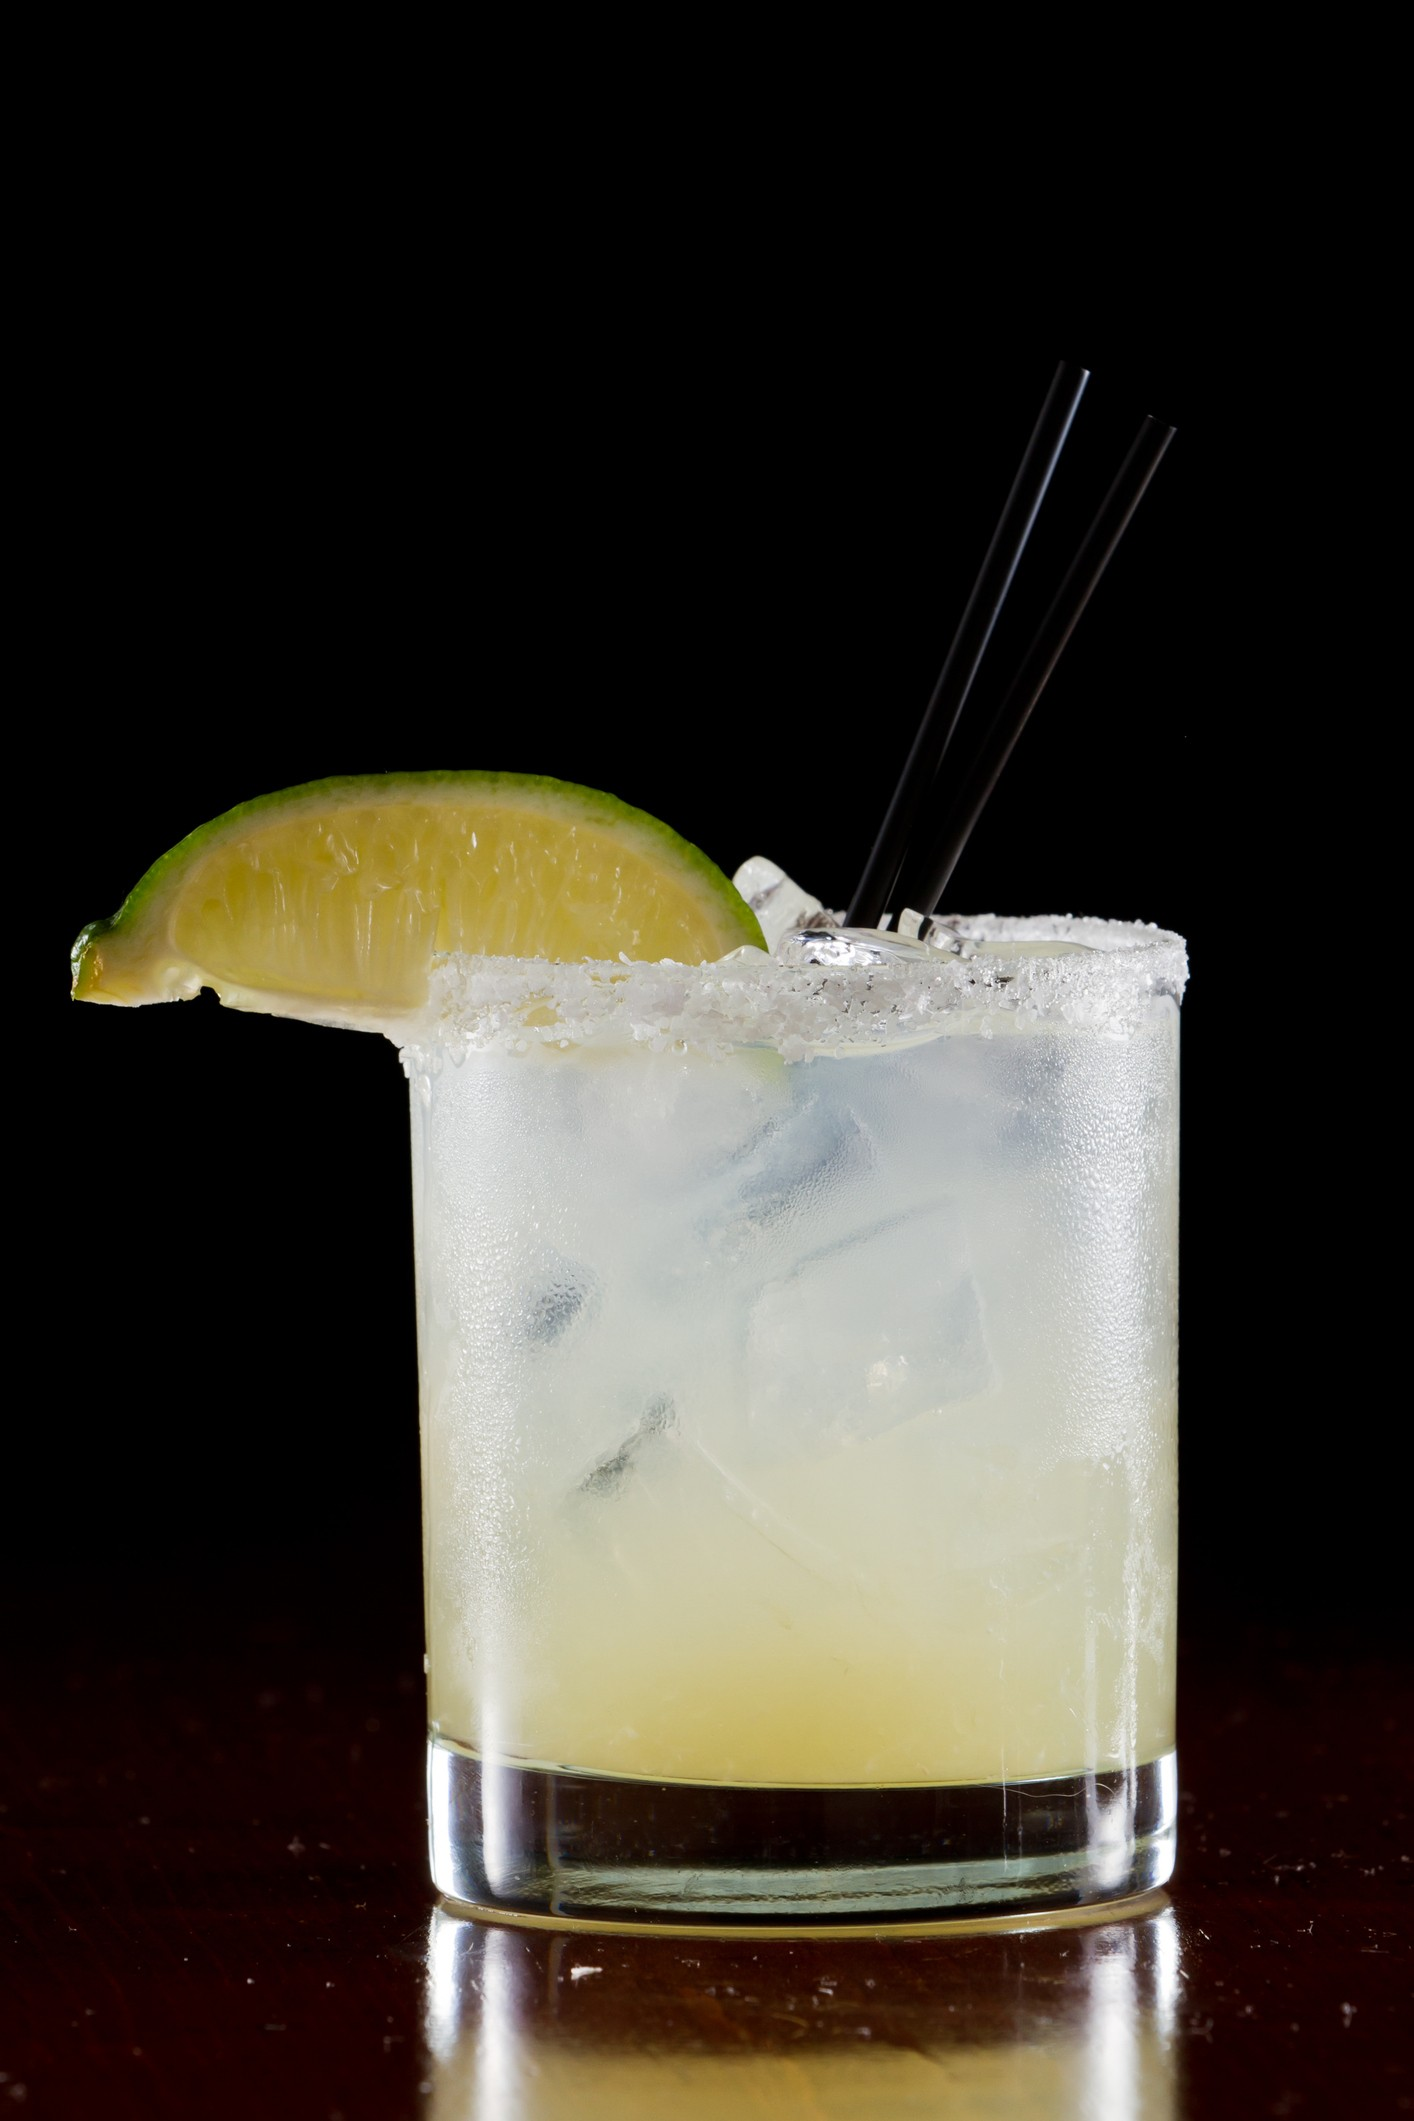 fresh lime juice margarita served on the rocks in a dark restaurant (Foto: Getty Images/iStockphoto)